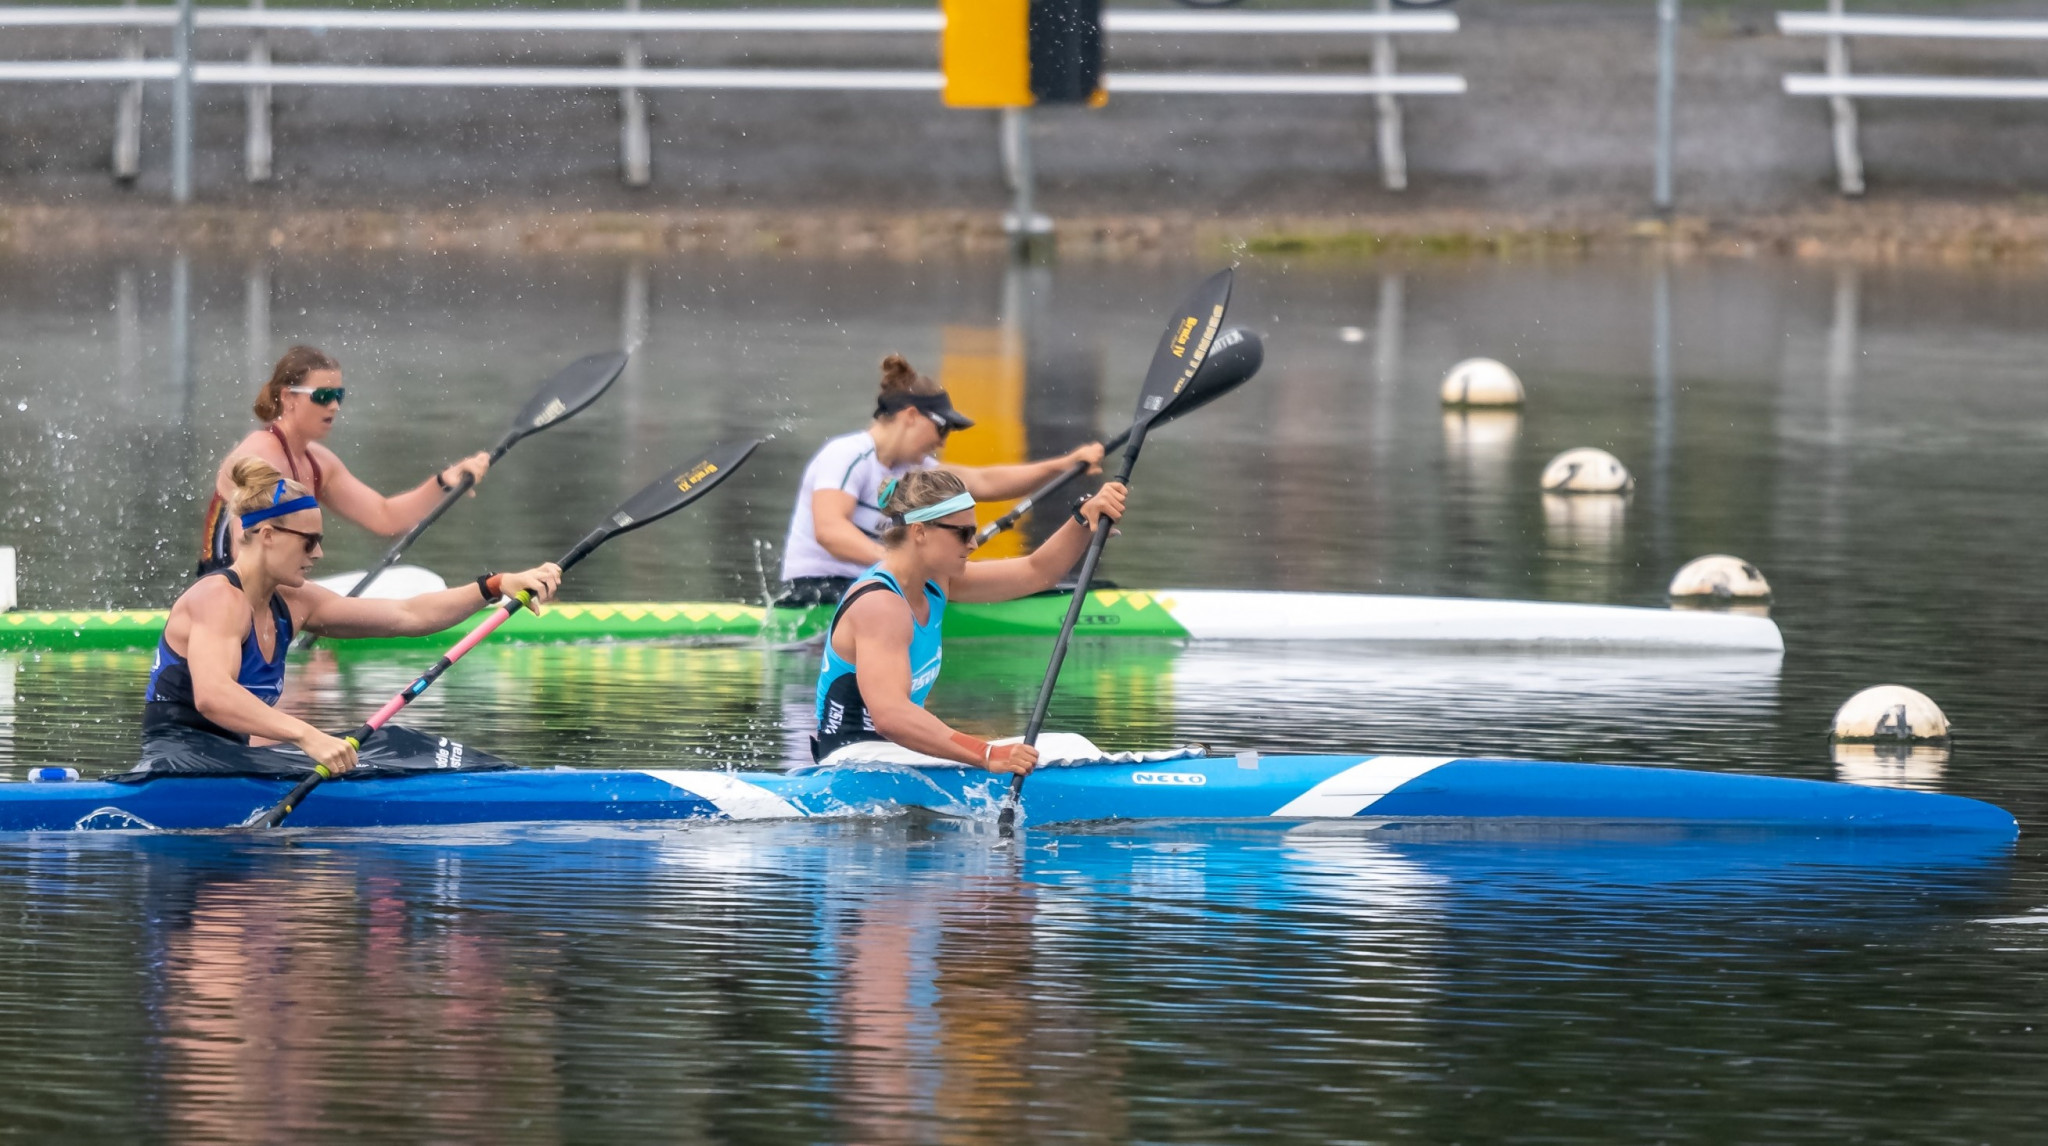 The event offered quota places for the Tokyo 2020 Olympics ©JGR Images